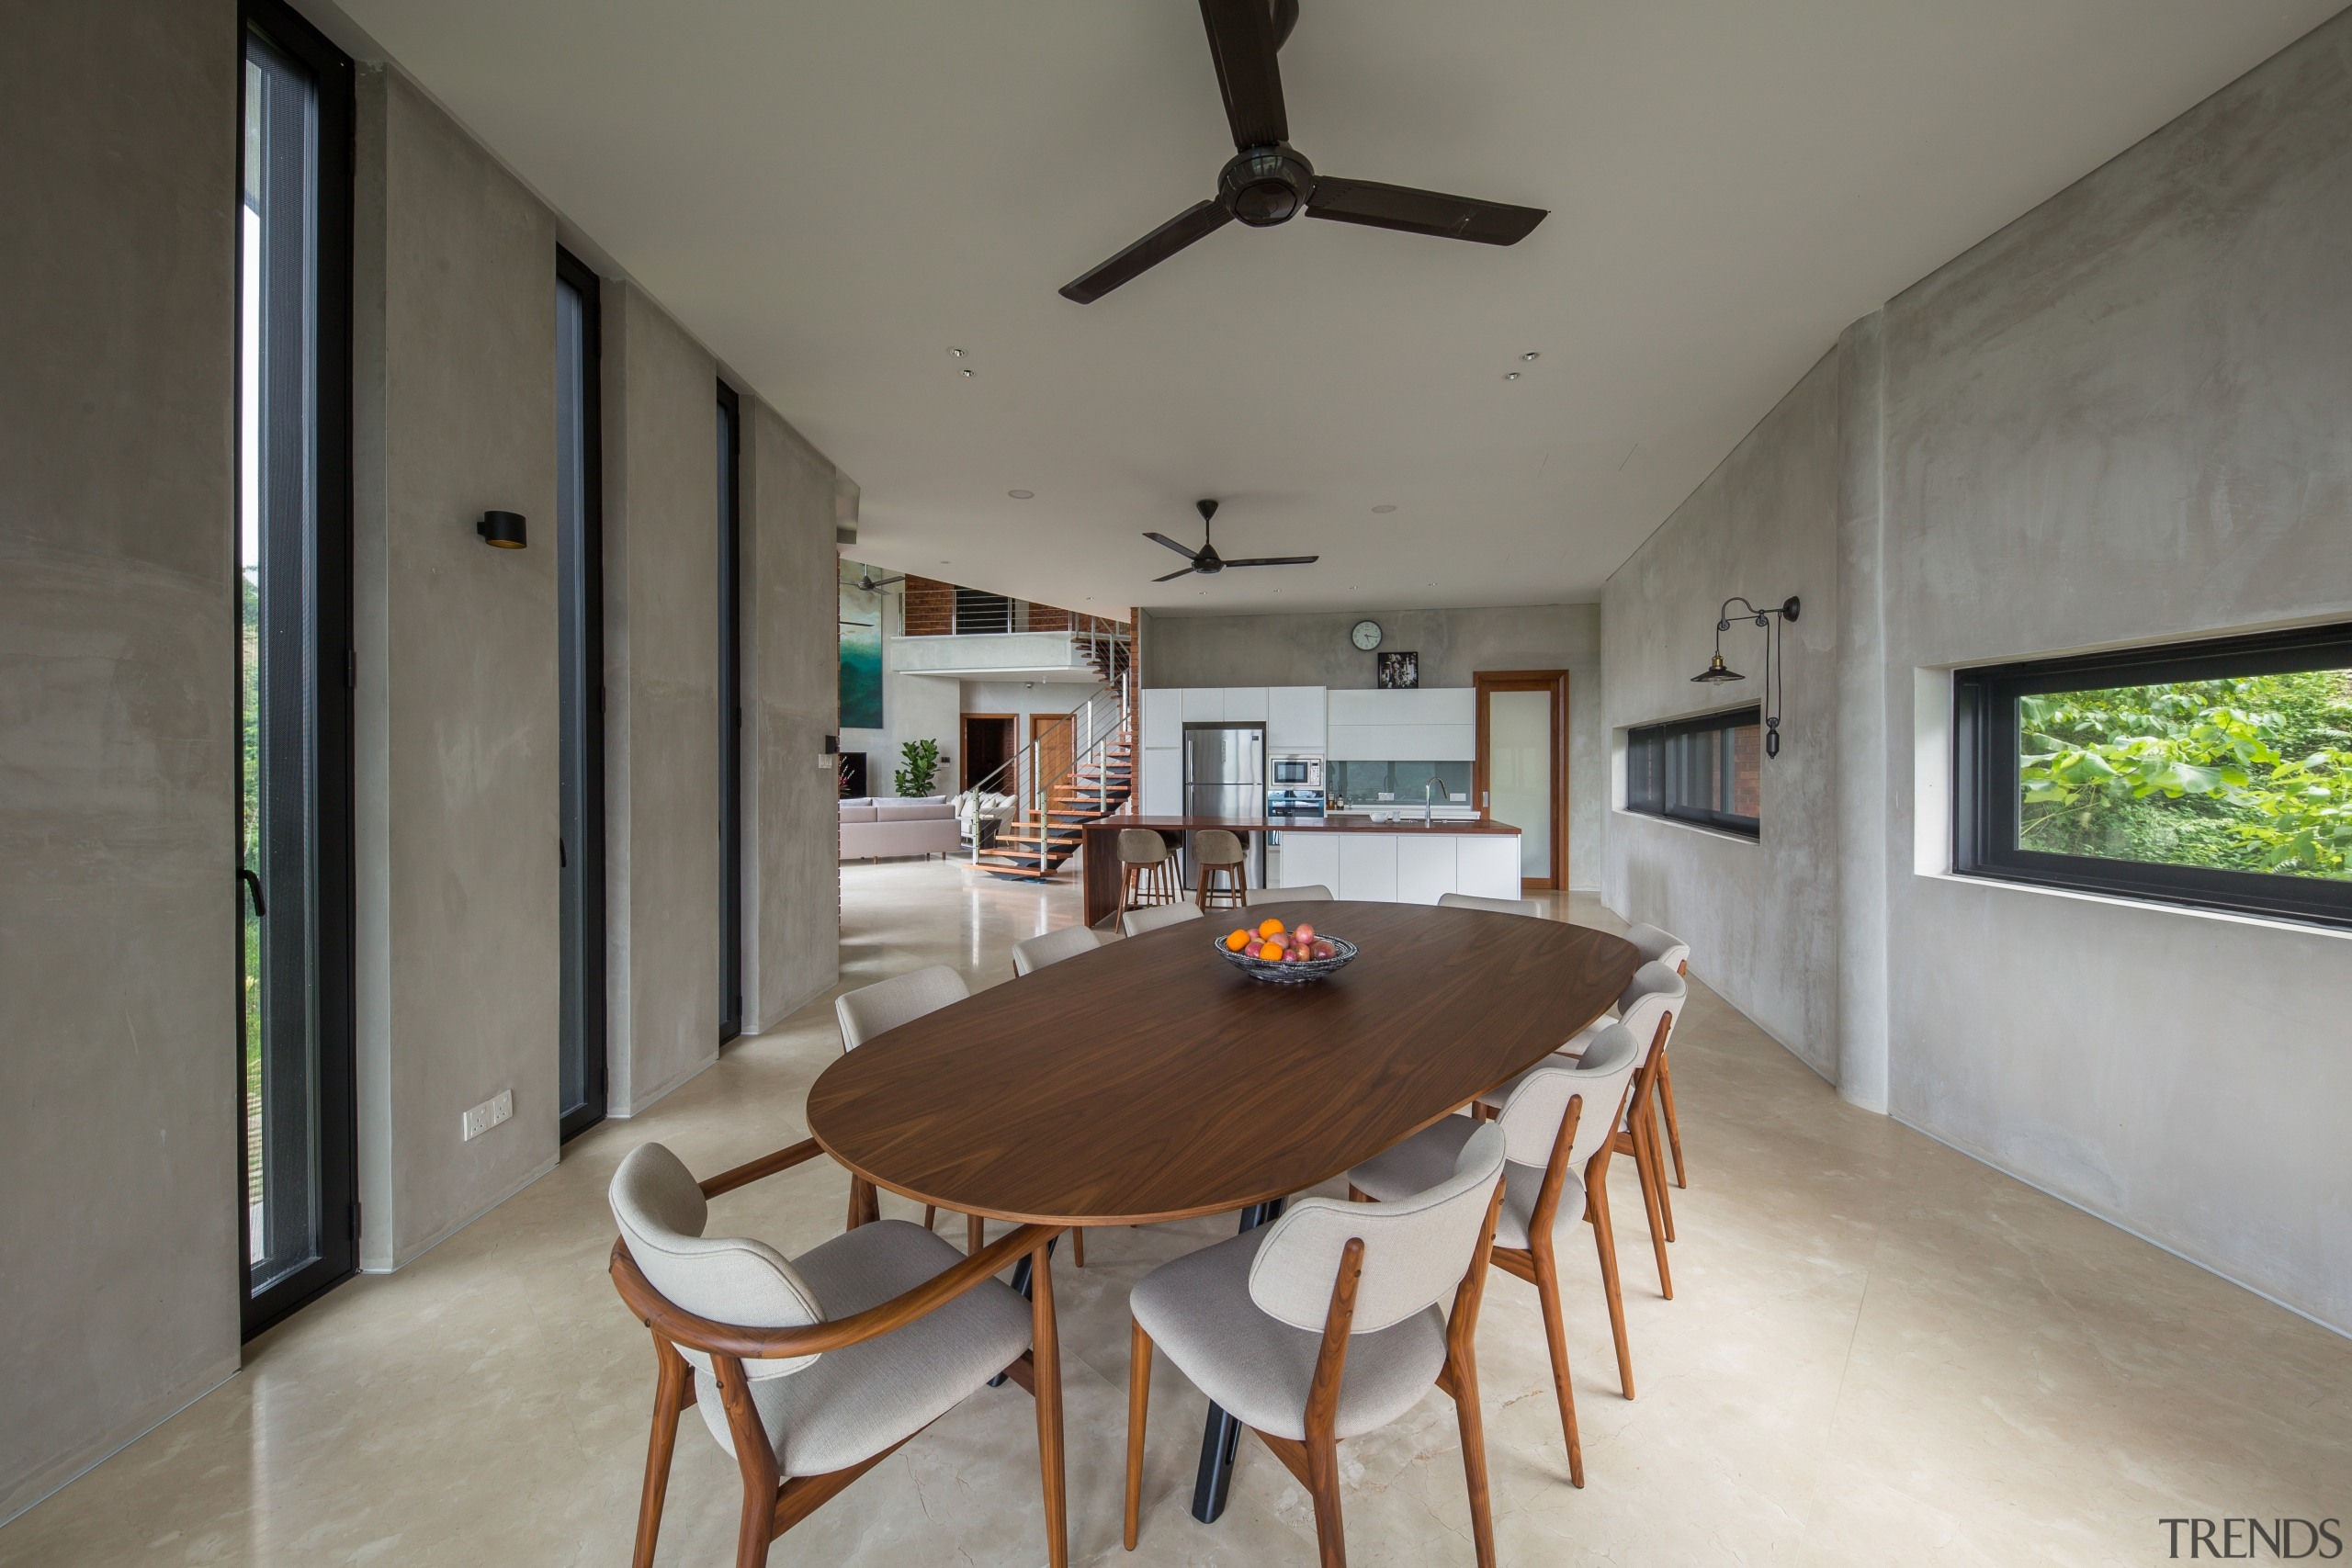 The dining area includes a classic ceiling fan. architecture, building, ceiling, dining room, floor, furniture, home, house, interior design, property, real estate, room, table, gray